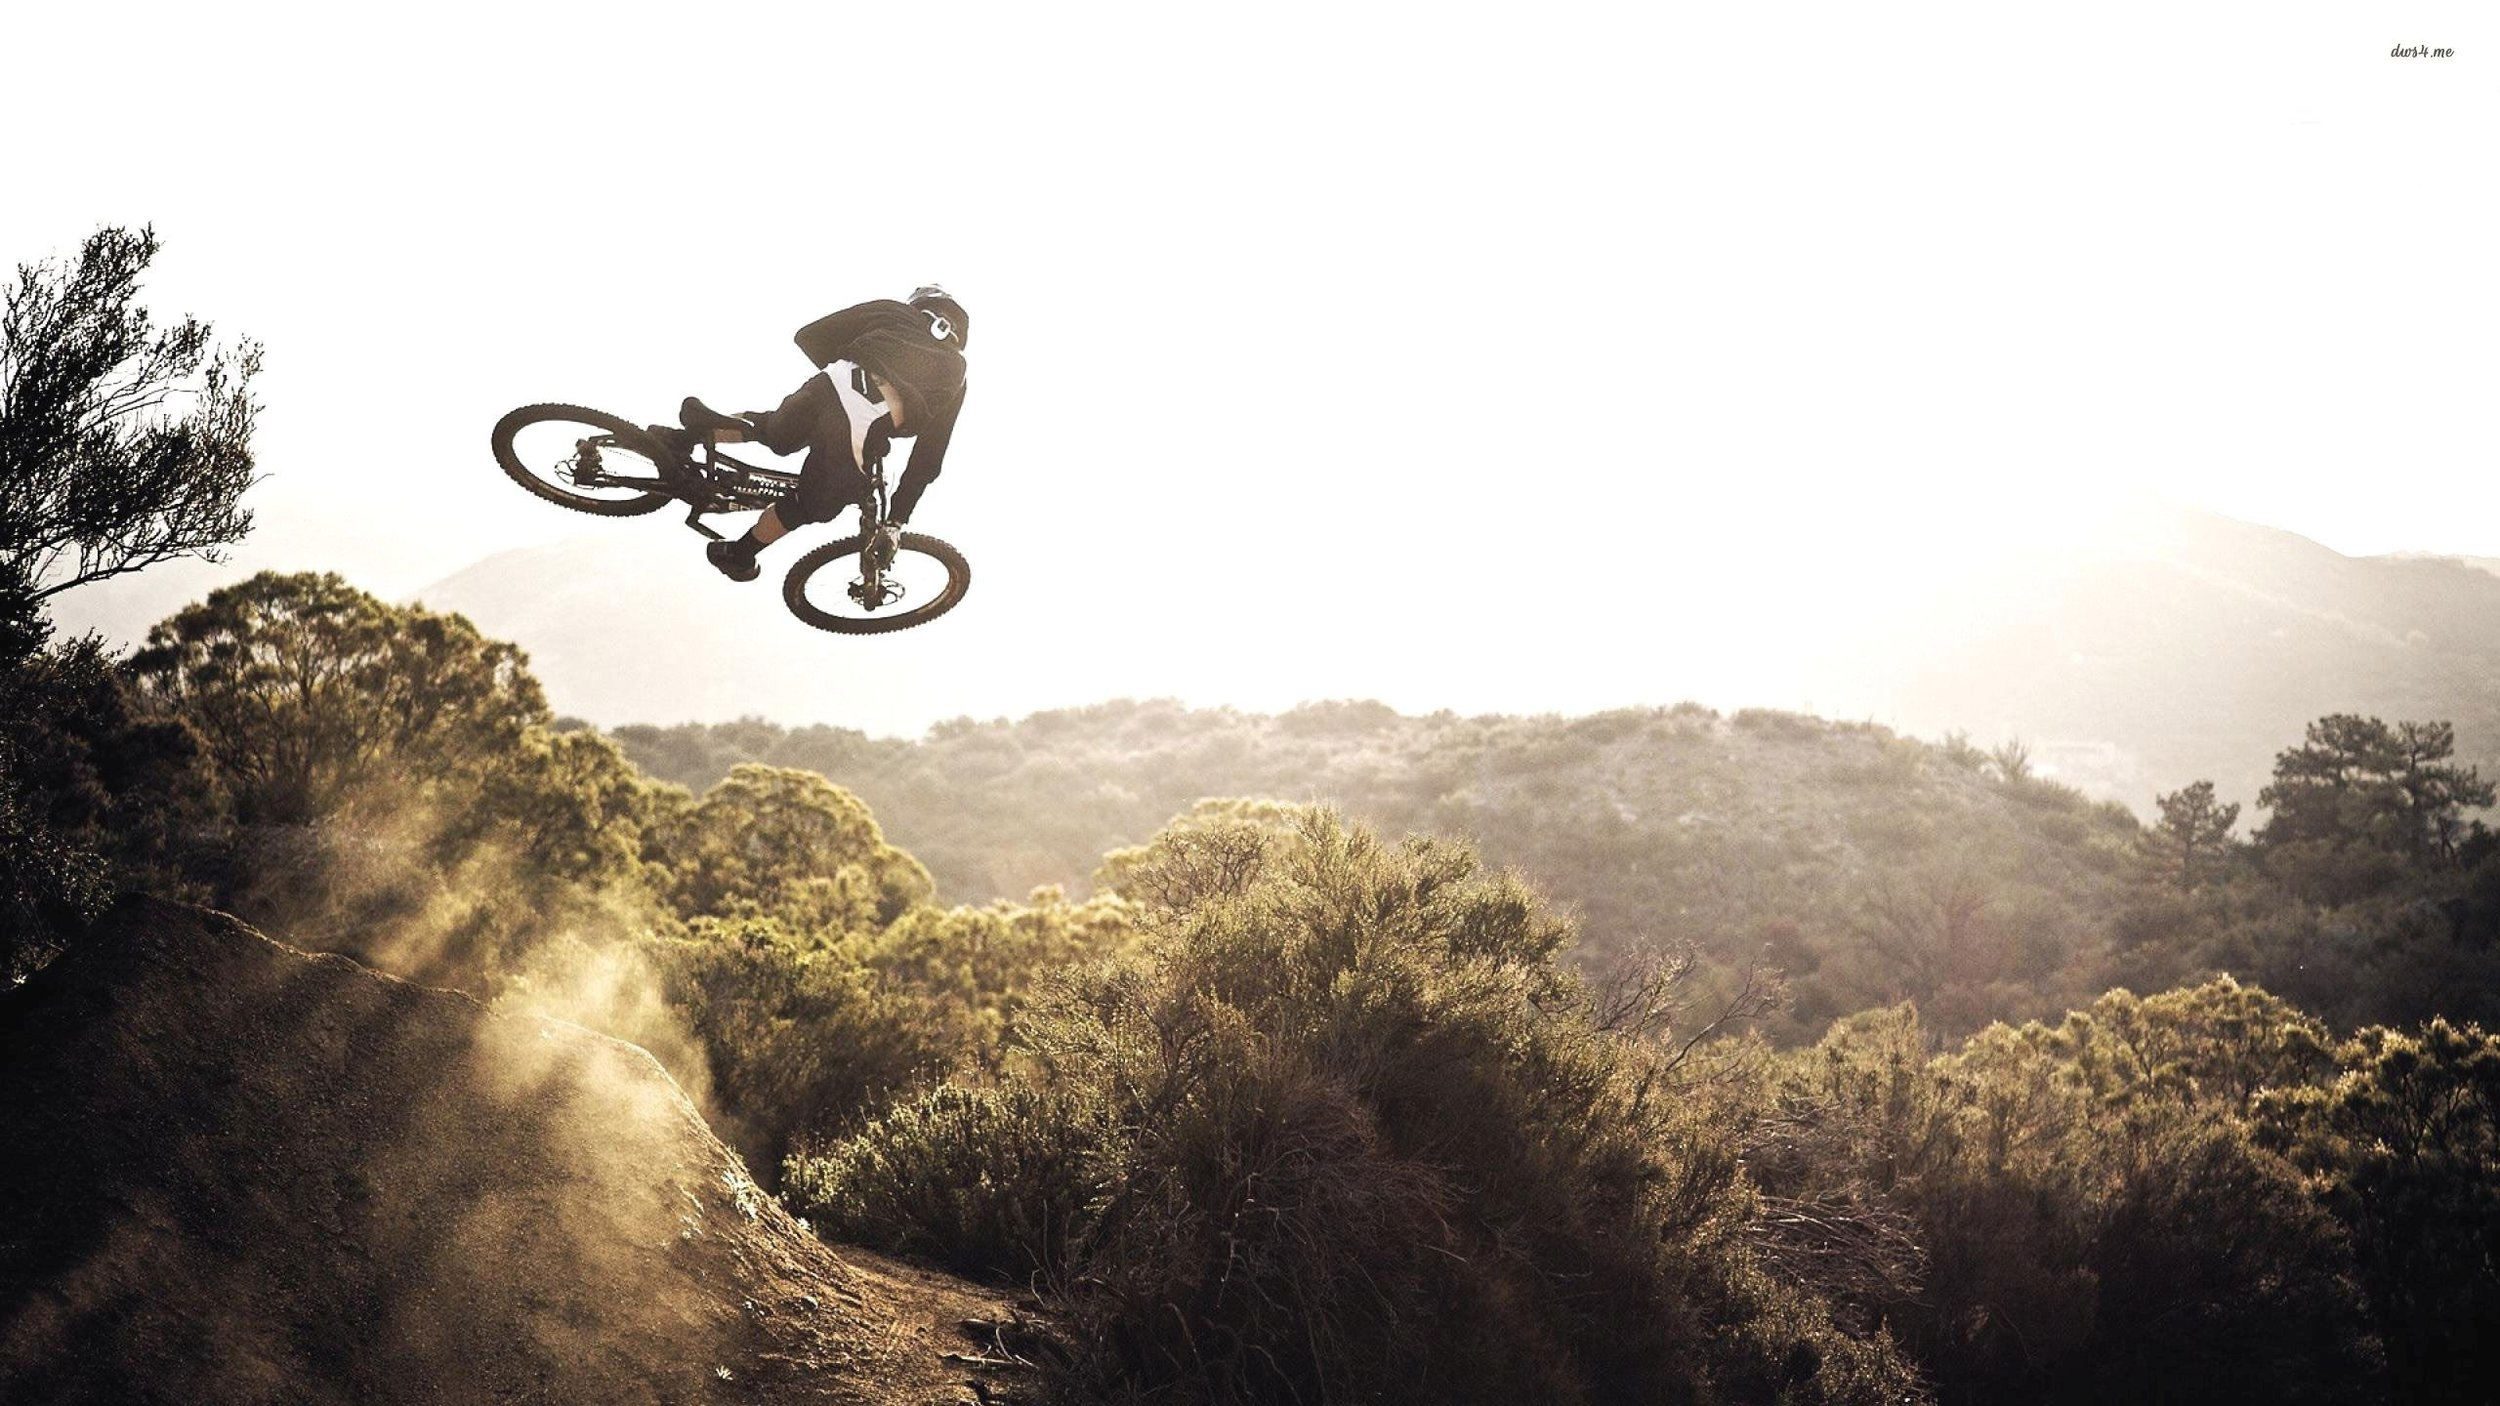 29593-mountain-biking-2560x1440-sport-wallpaper.jpg